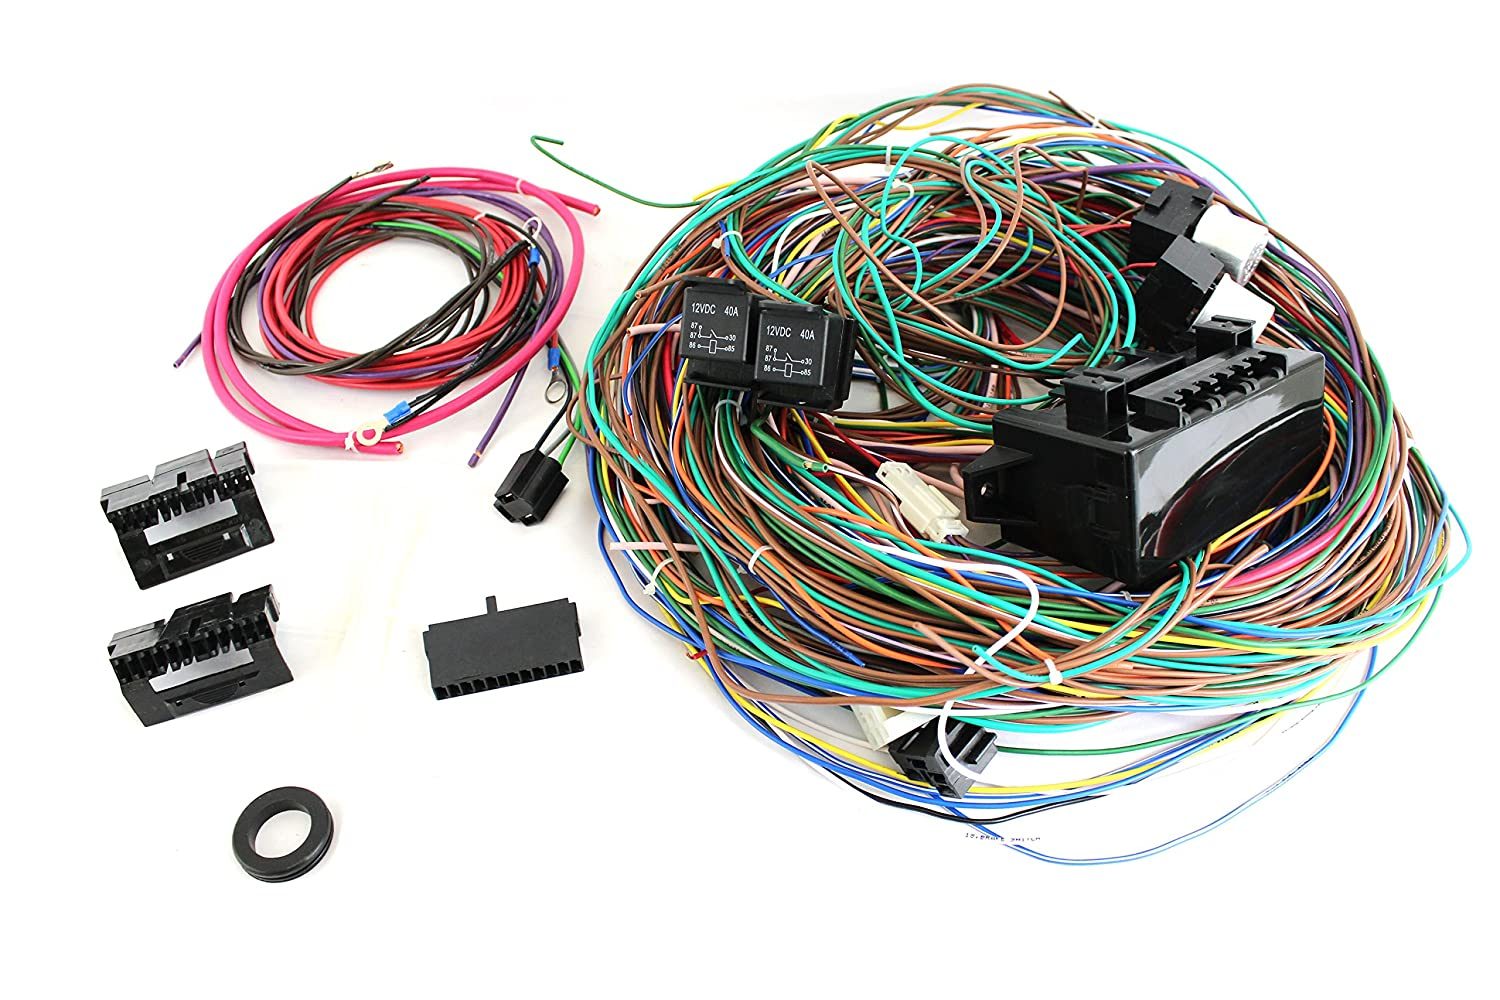 91YoamXFx2L._SL1500_ amazon com 12v 24 circuit 15 fuse street hot rat rod wiring 8 circuit wiring harness at readyjetset.co